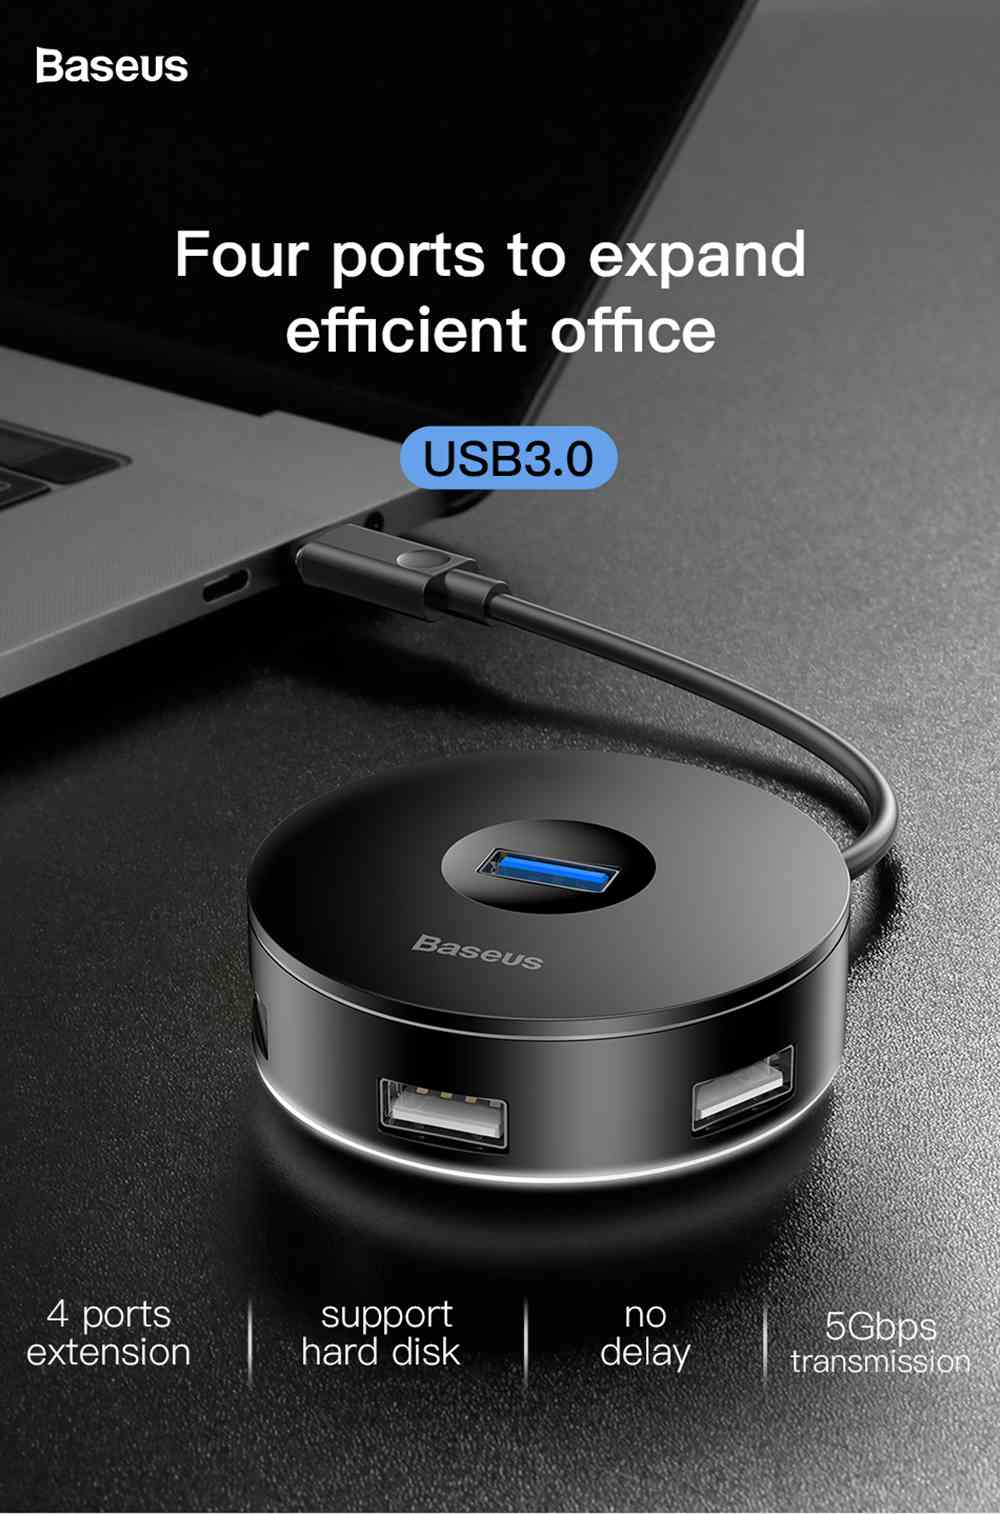 Baseus Round Box 4-in-1 Type-C HUB Adapter 12cm USB3.0 x 1 + USB2.0 x 3 Support 4TB SSD For Laptop Smartphone - Black